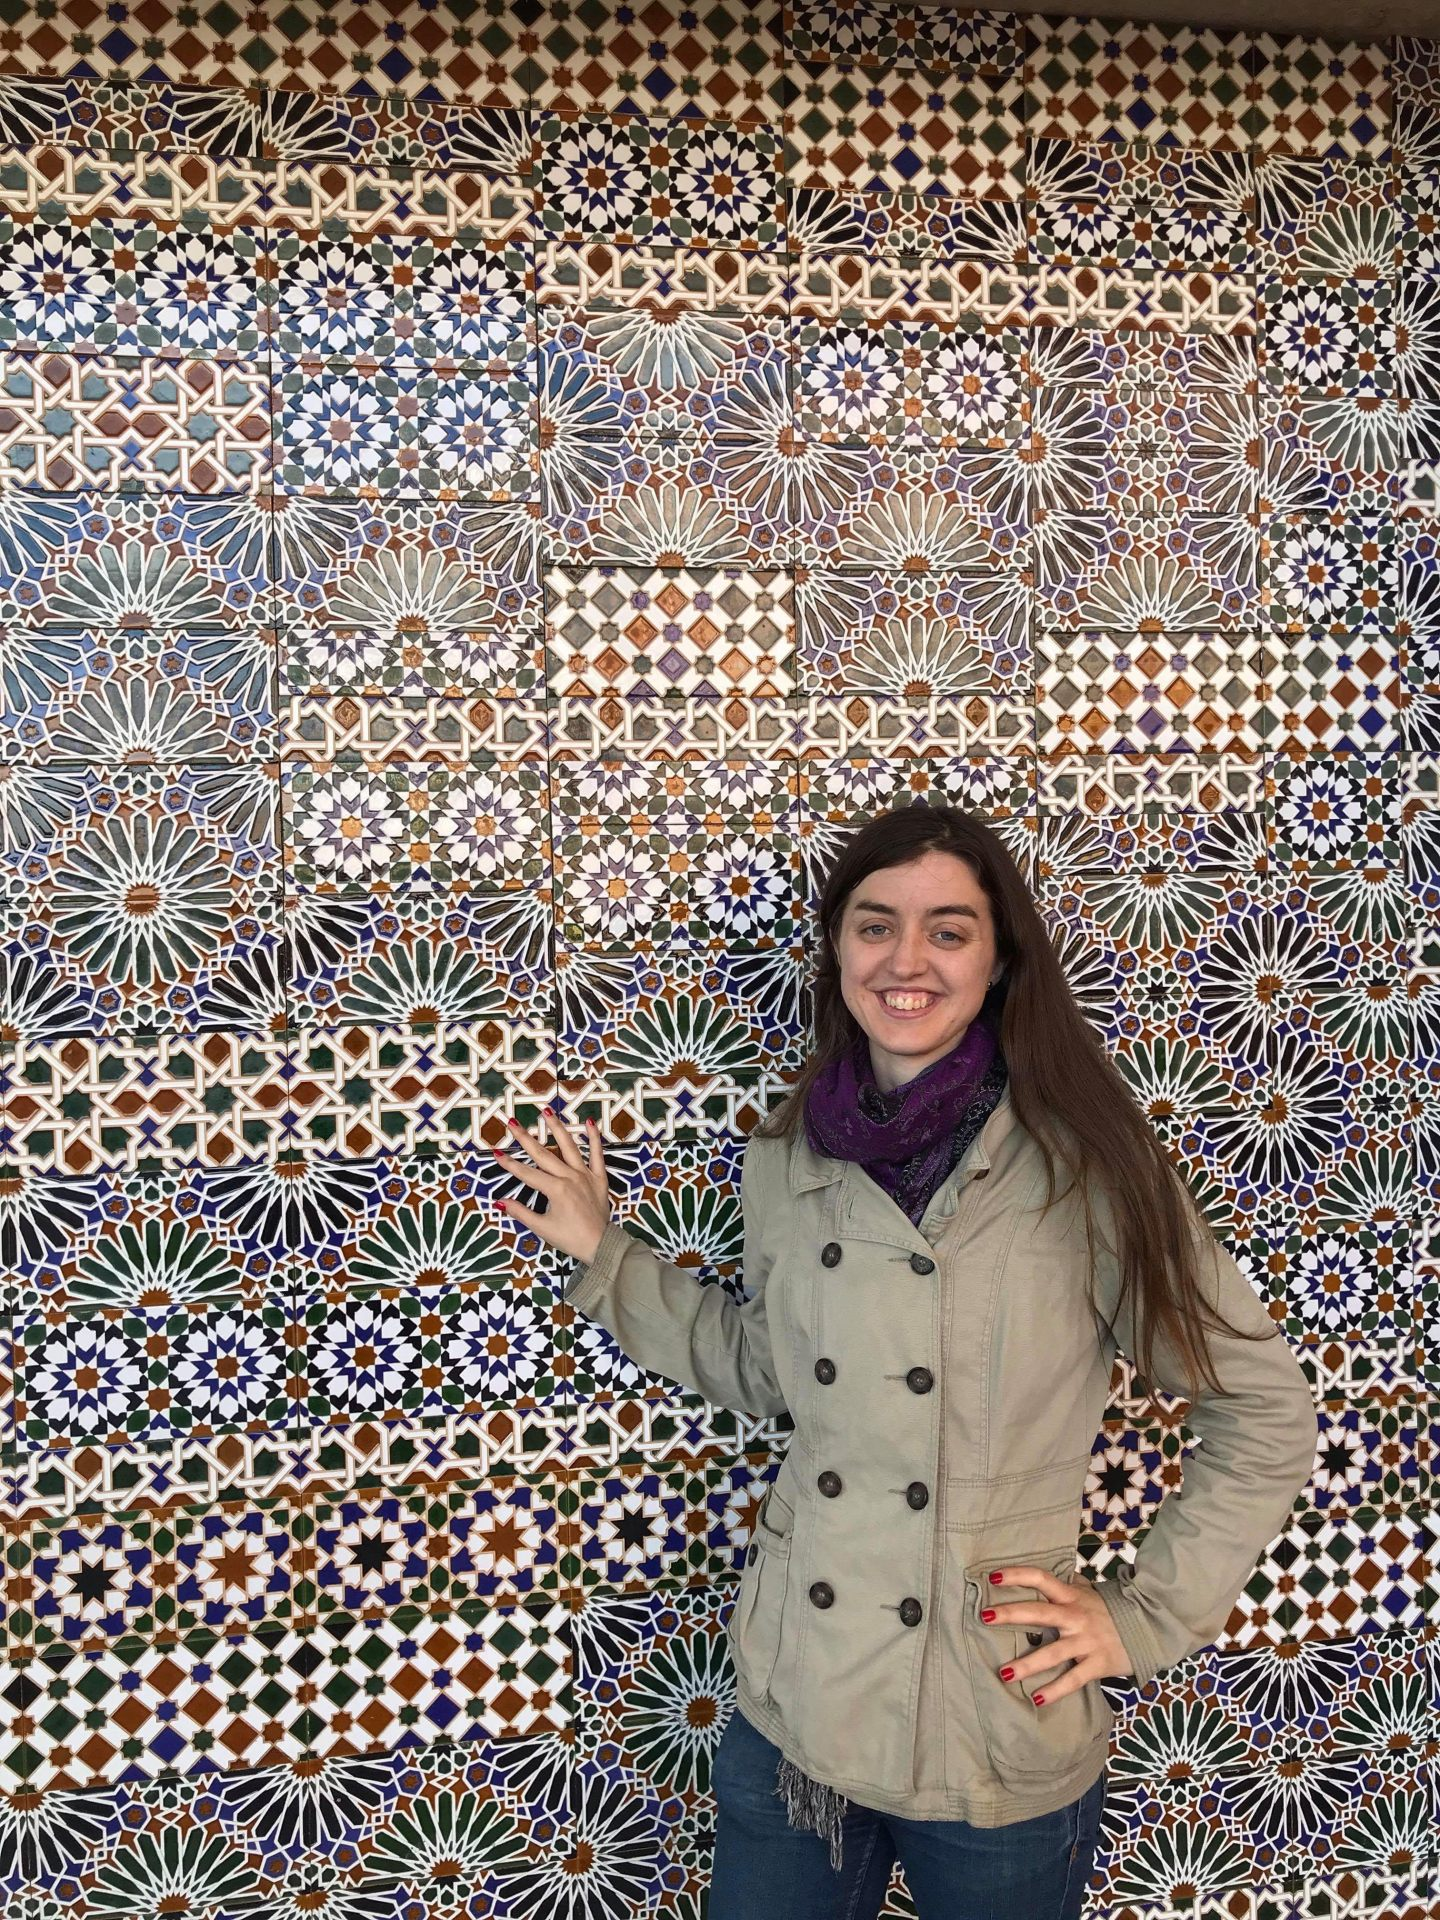 Visting Toledo while living abroad